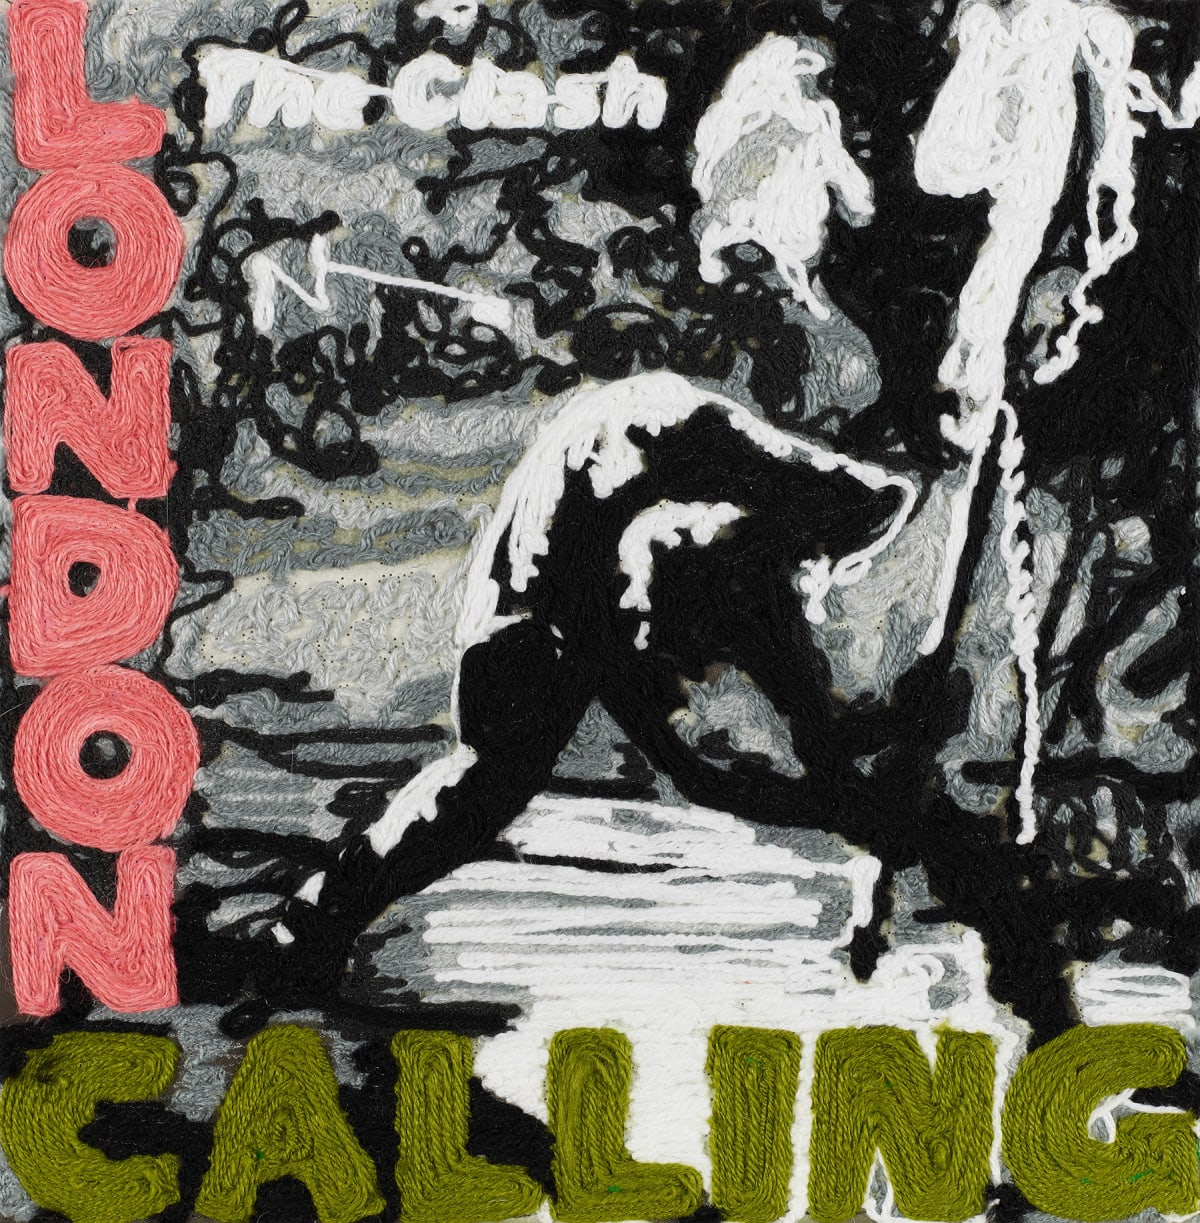 Stephen Wilson, London Calling, The Clash , 2019